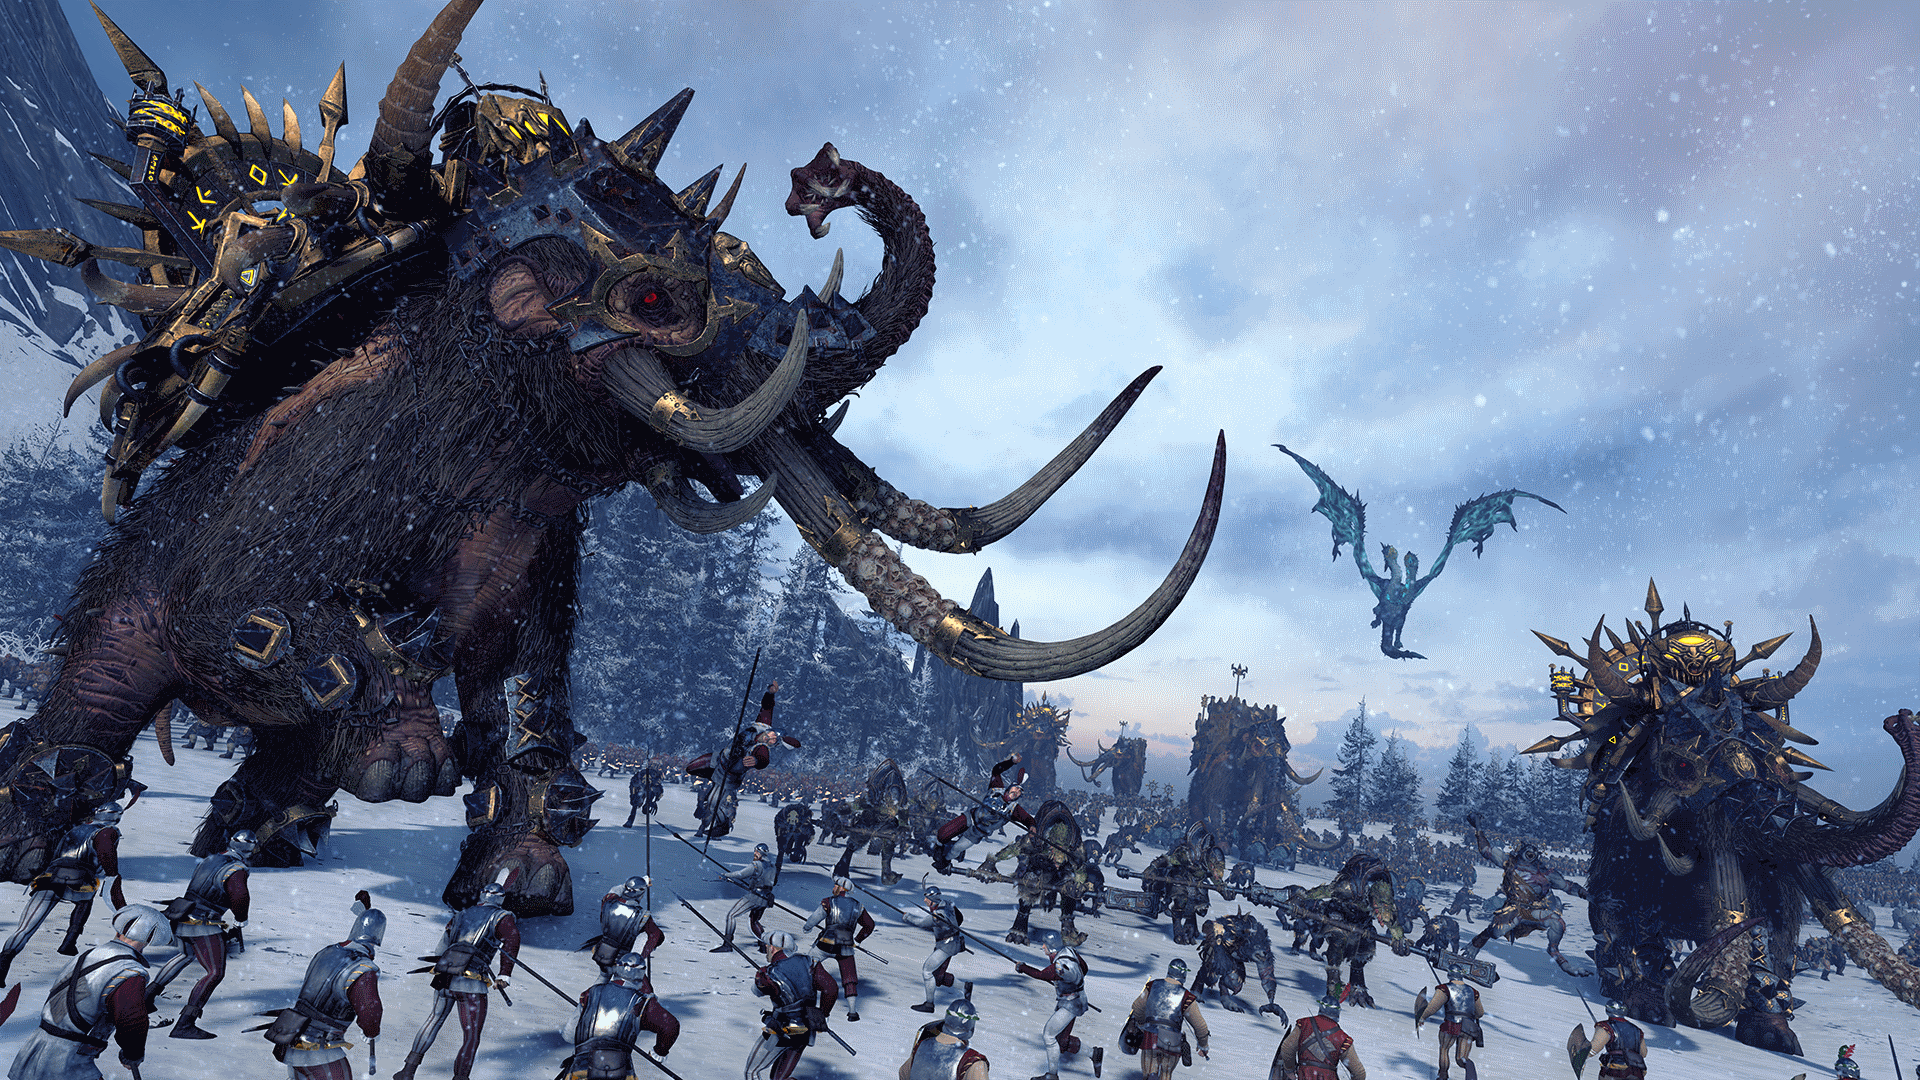 Total War: Warhammer II Review - Here Come the Ratmen - G2A News